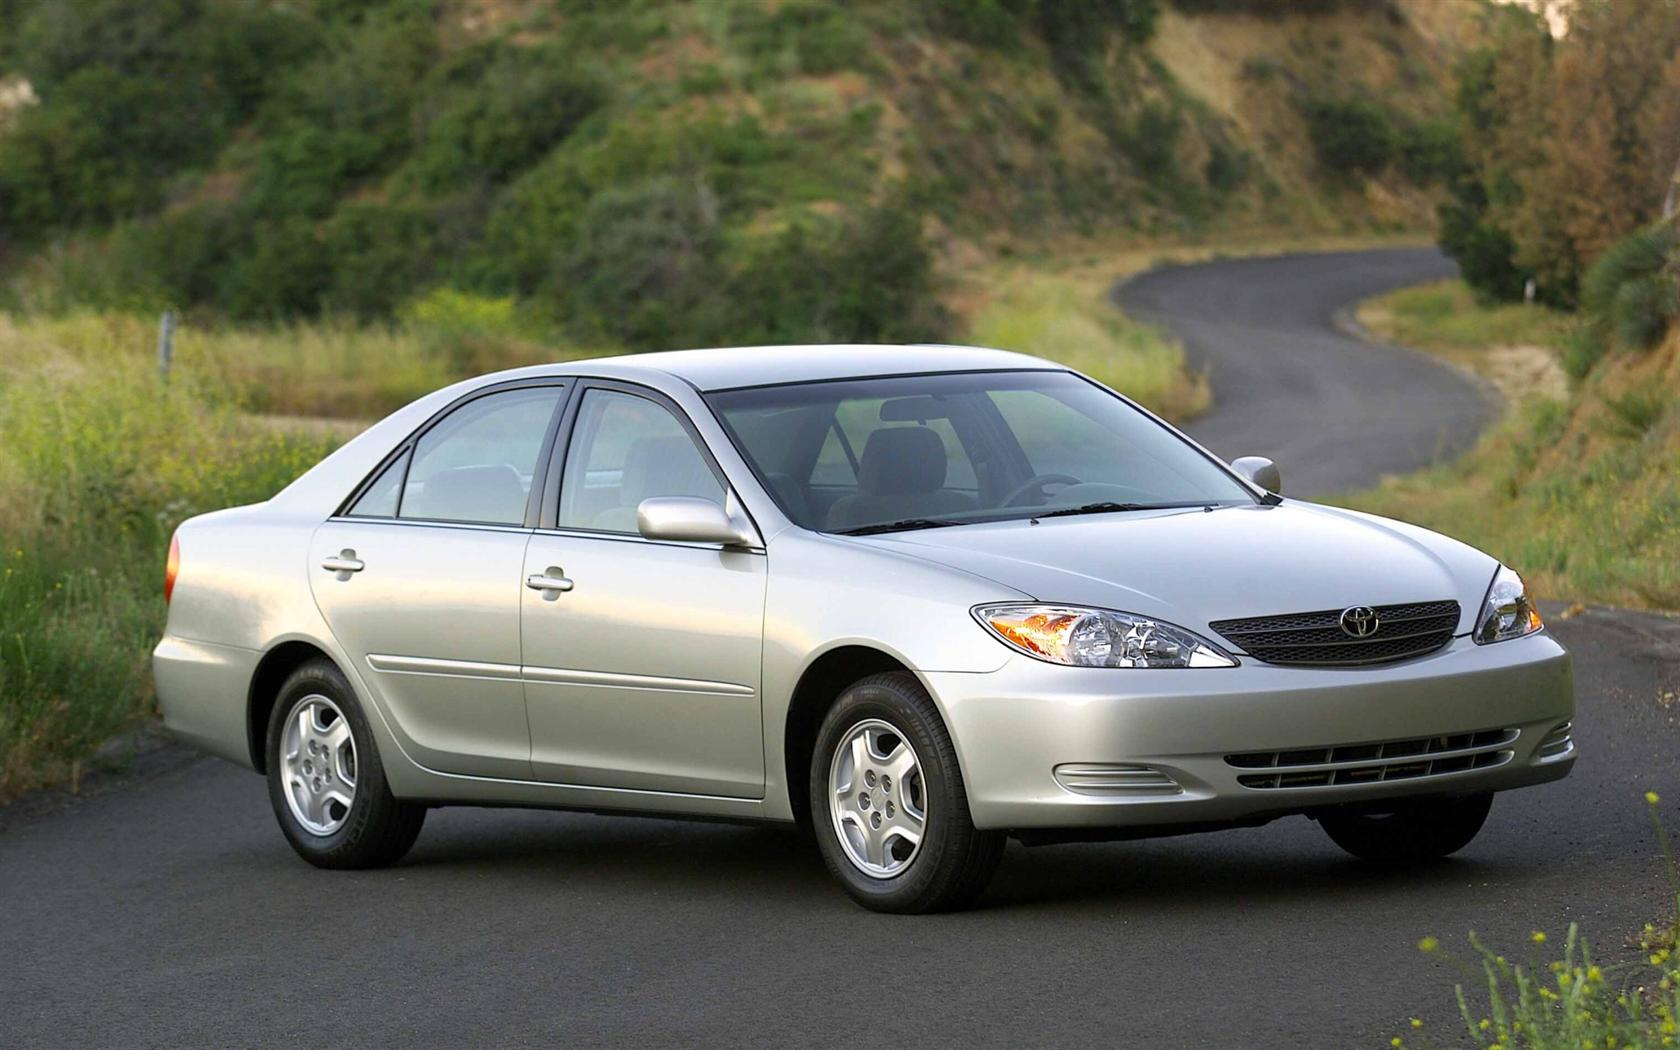 2003 toyota camry information and photos momentcar. Black Bedroom Furniture Sets. Home Design Ideas